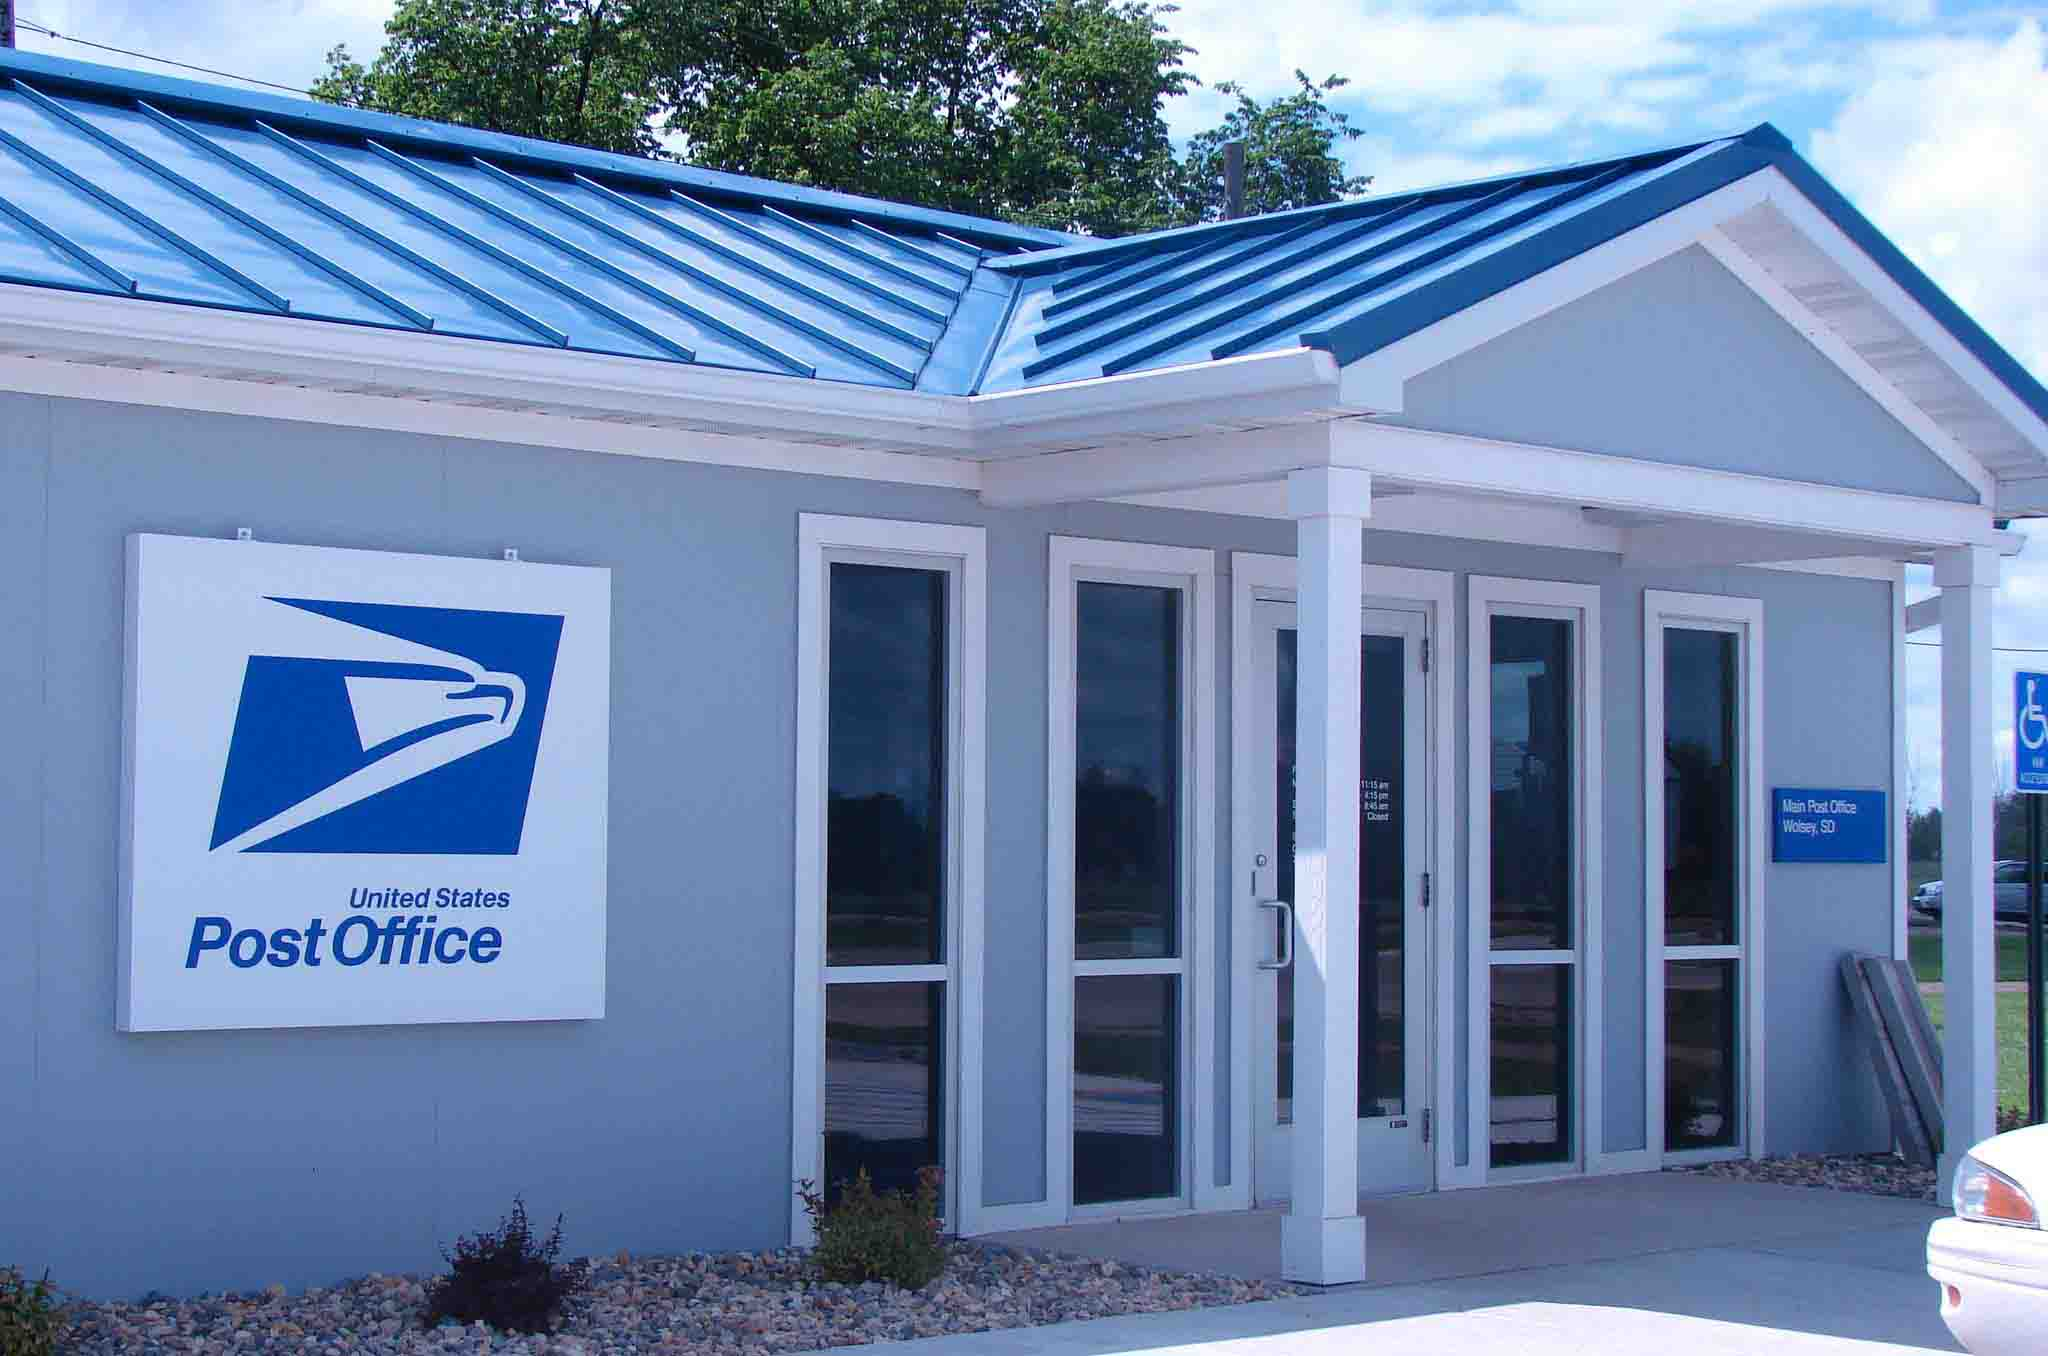 Us appeals court no firearms on u s postal property at all sorry parking lot concealed nation - Post office working today ...